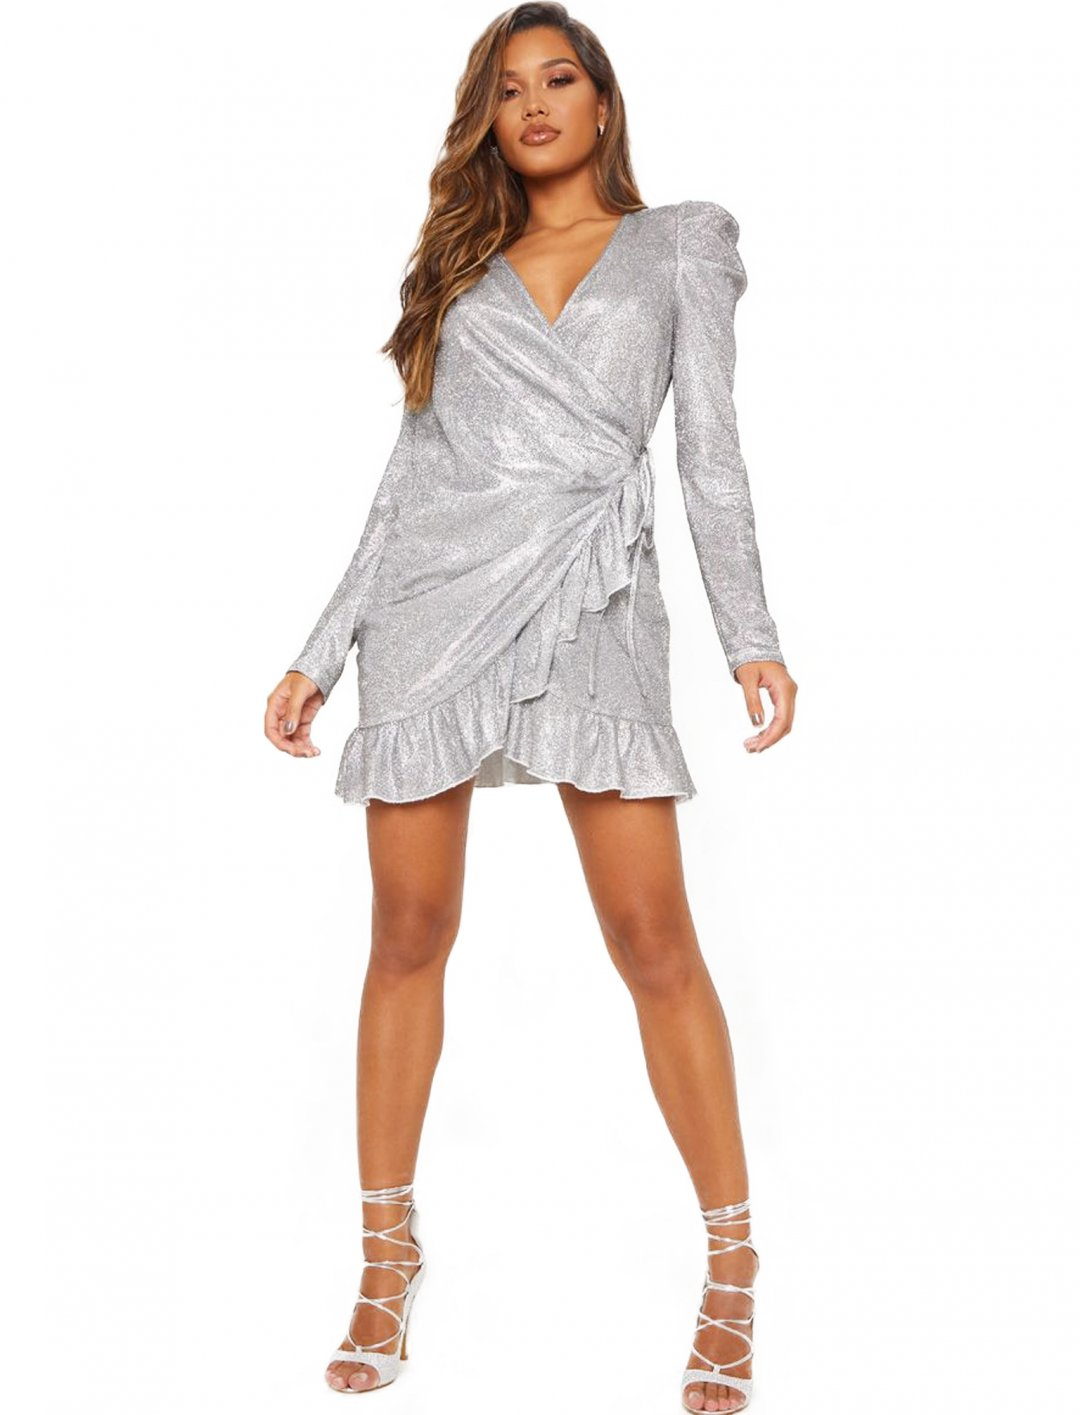 "Silver Wrap Dress {""id"":5,""product_section_id"":1,""name"":""Clothing"",""order"":5} Hailey Baldwin x Pretty Little Thing"